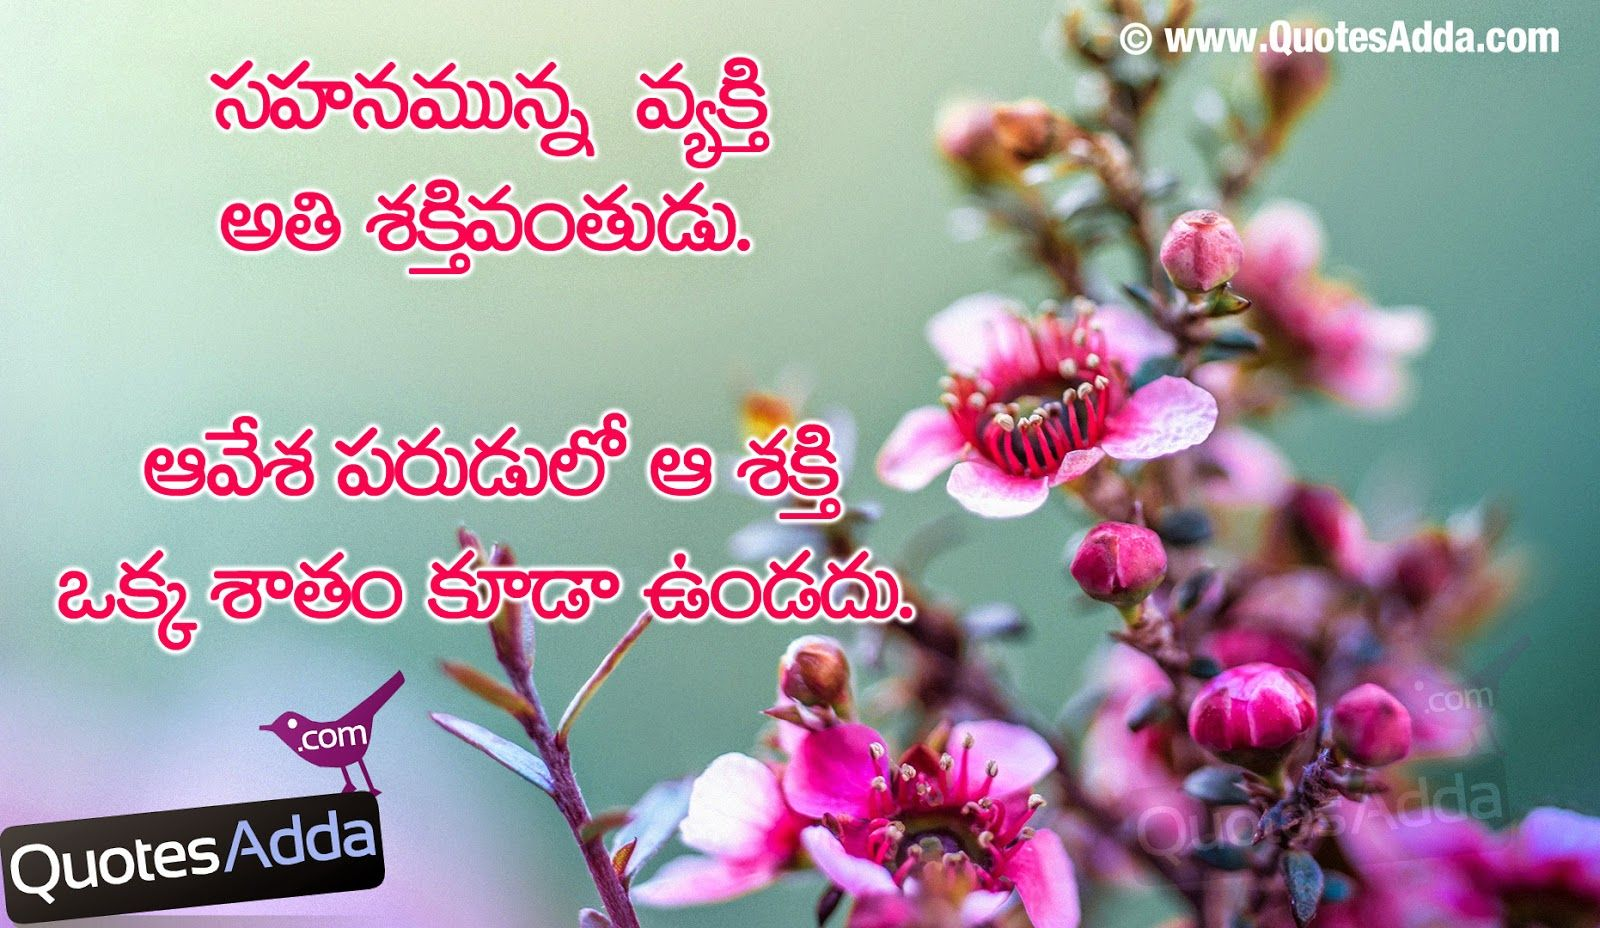 I Love You Quotes For Him In Kannada : love failure quotes for her in kannada 473oNarRG in love quotes ...